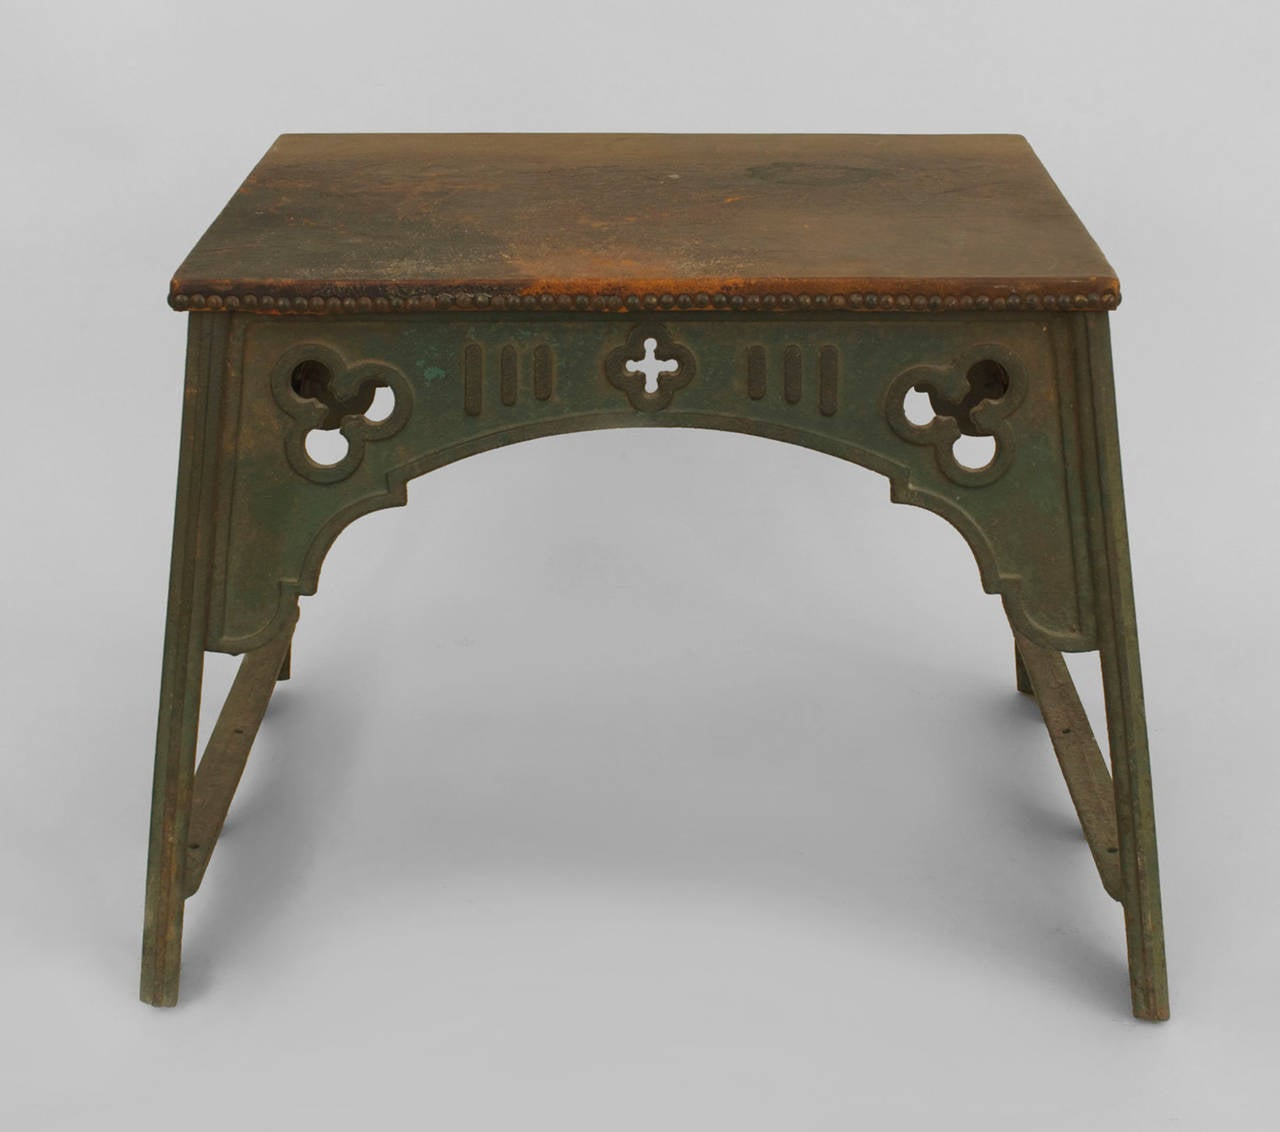 English arts and crafts iron coffee table with leather top for sale at 1stdibs Coffee table with leather top